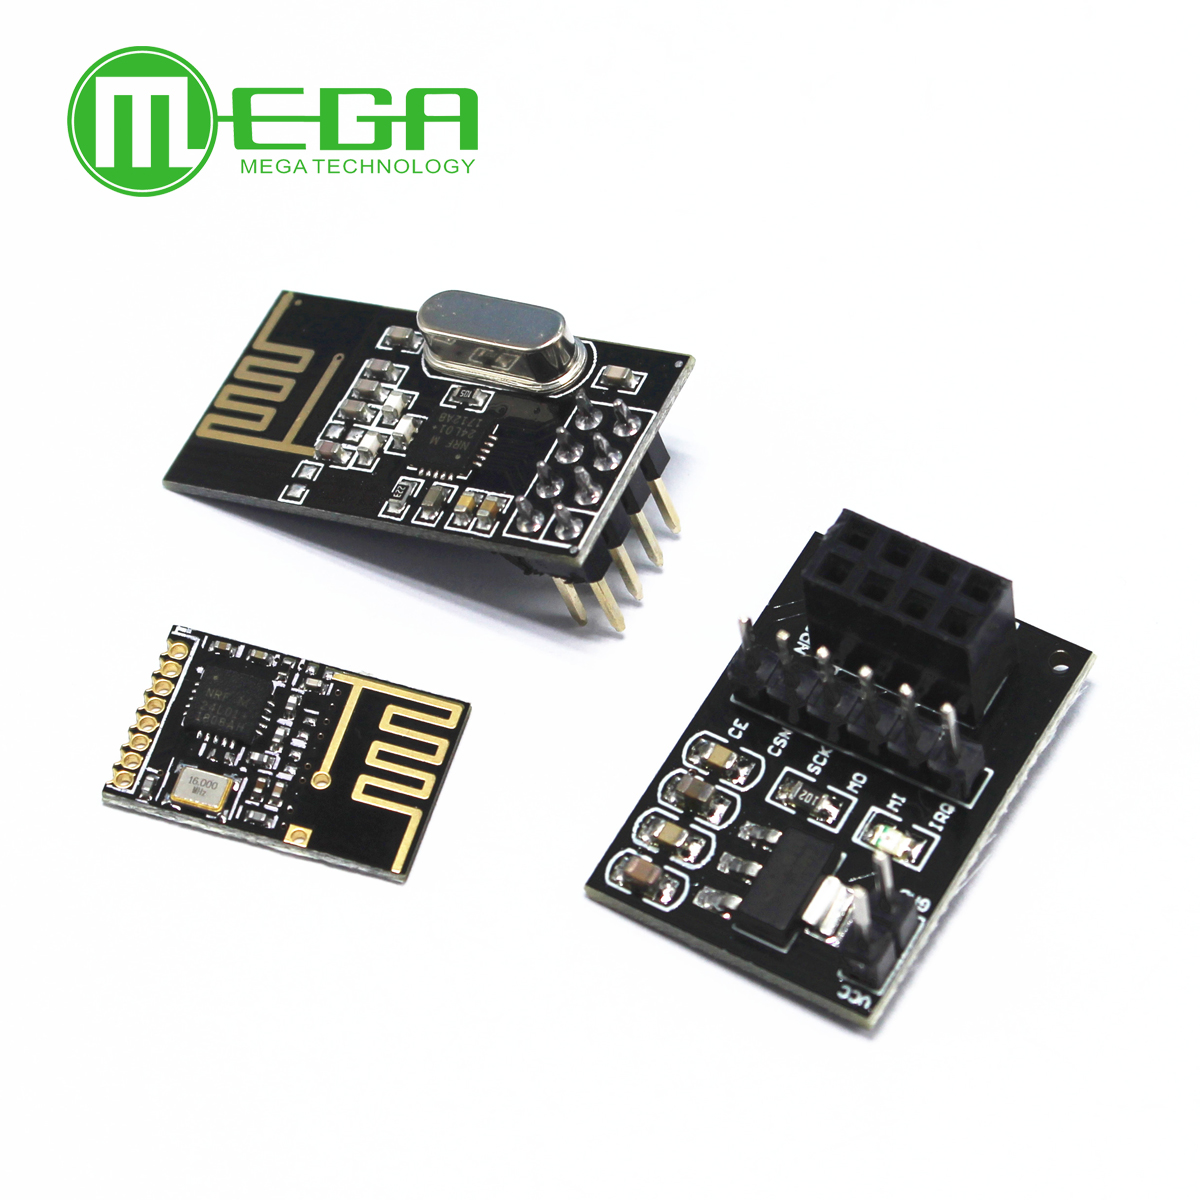 NRF24L01+ Wireless Data Transmission Module 2.4G / The NRF24L01 Upgrade Version 2Mbit/s NRF24L01 Socket Adapter Plate Board